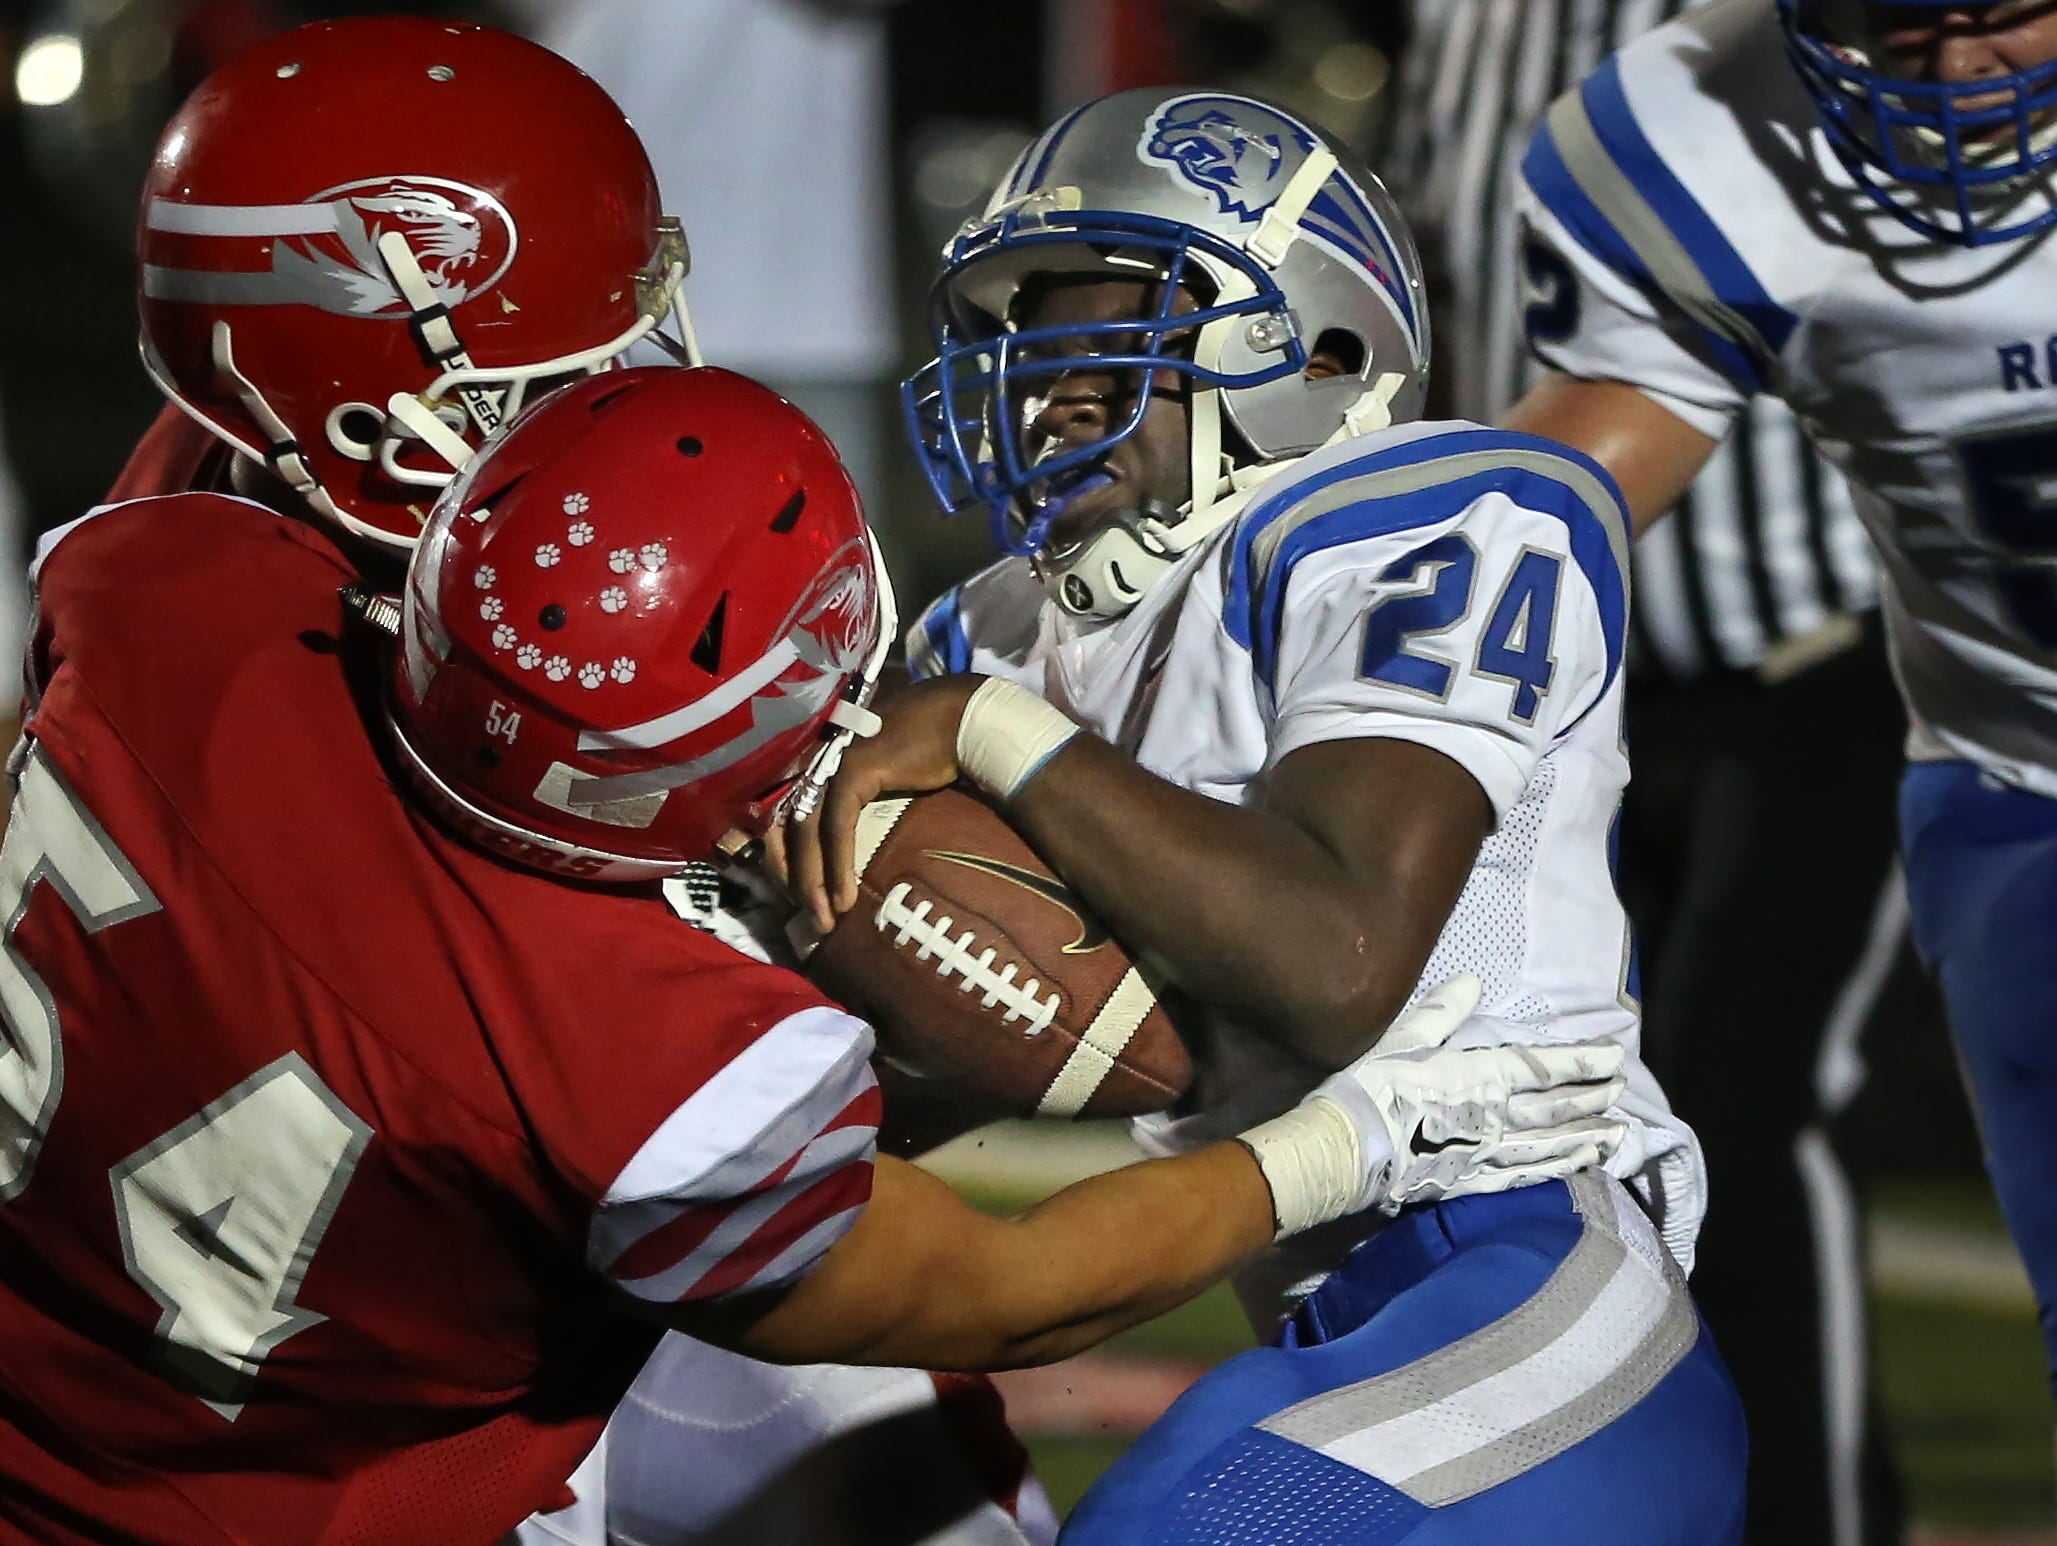 Fishers and Hamilton Southeastern reignite their rivalry Friday night in sectional play.